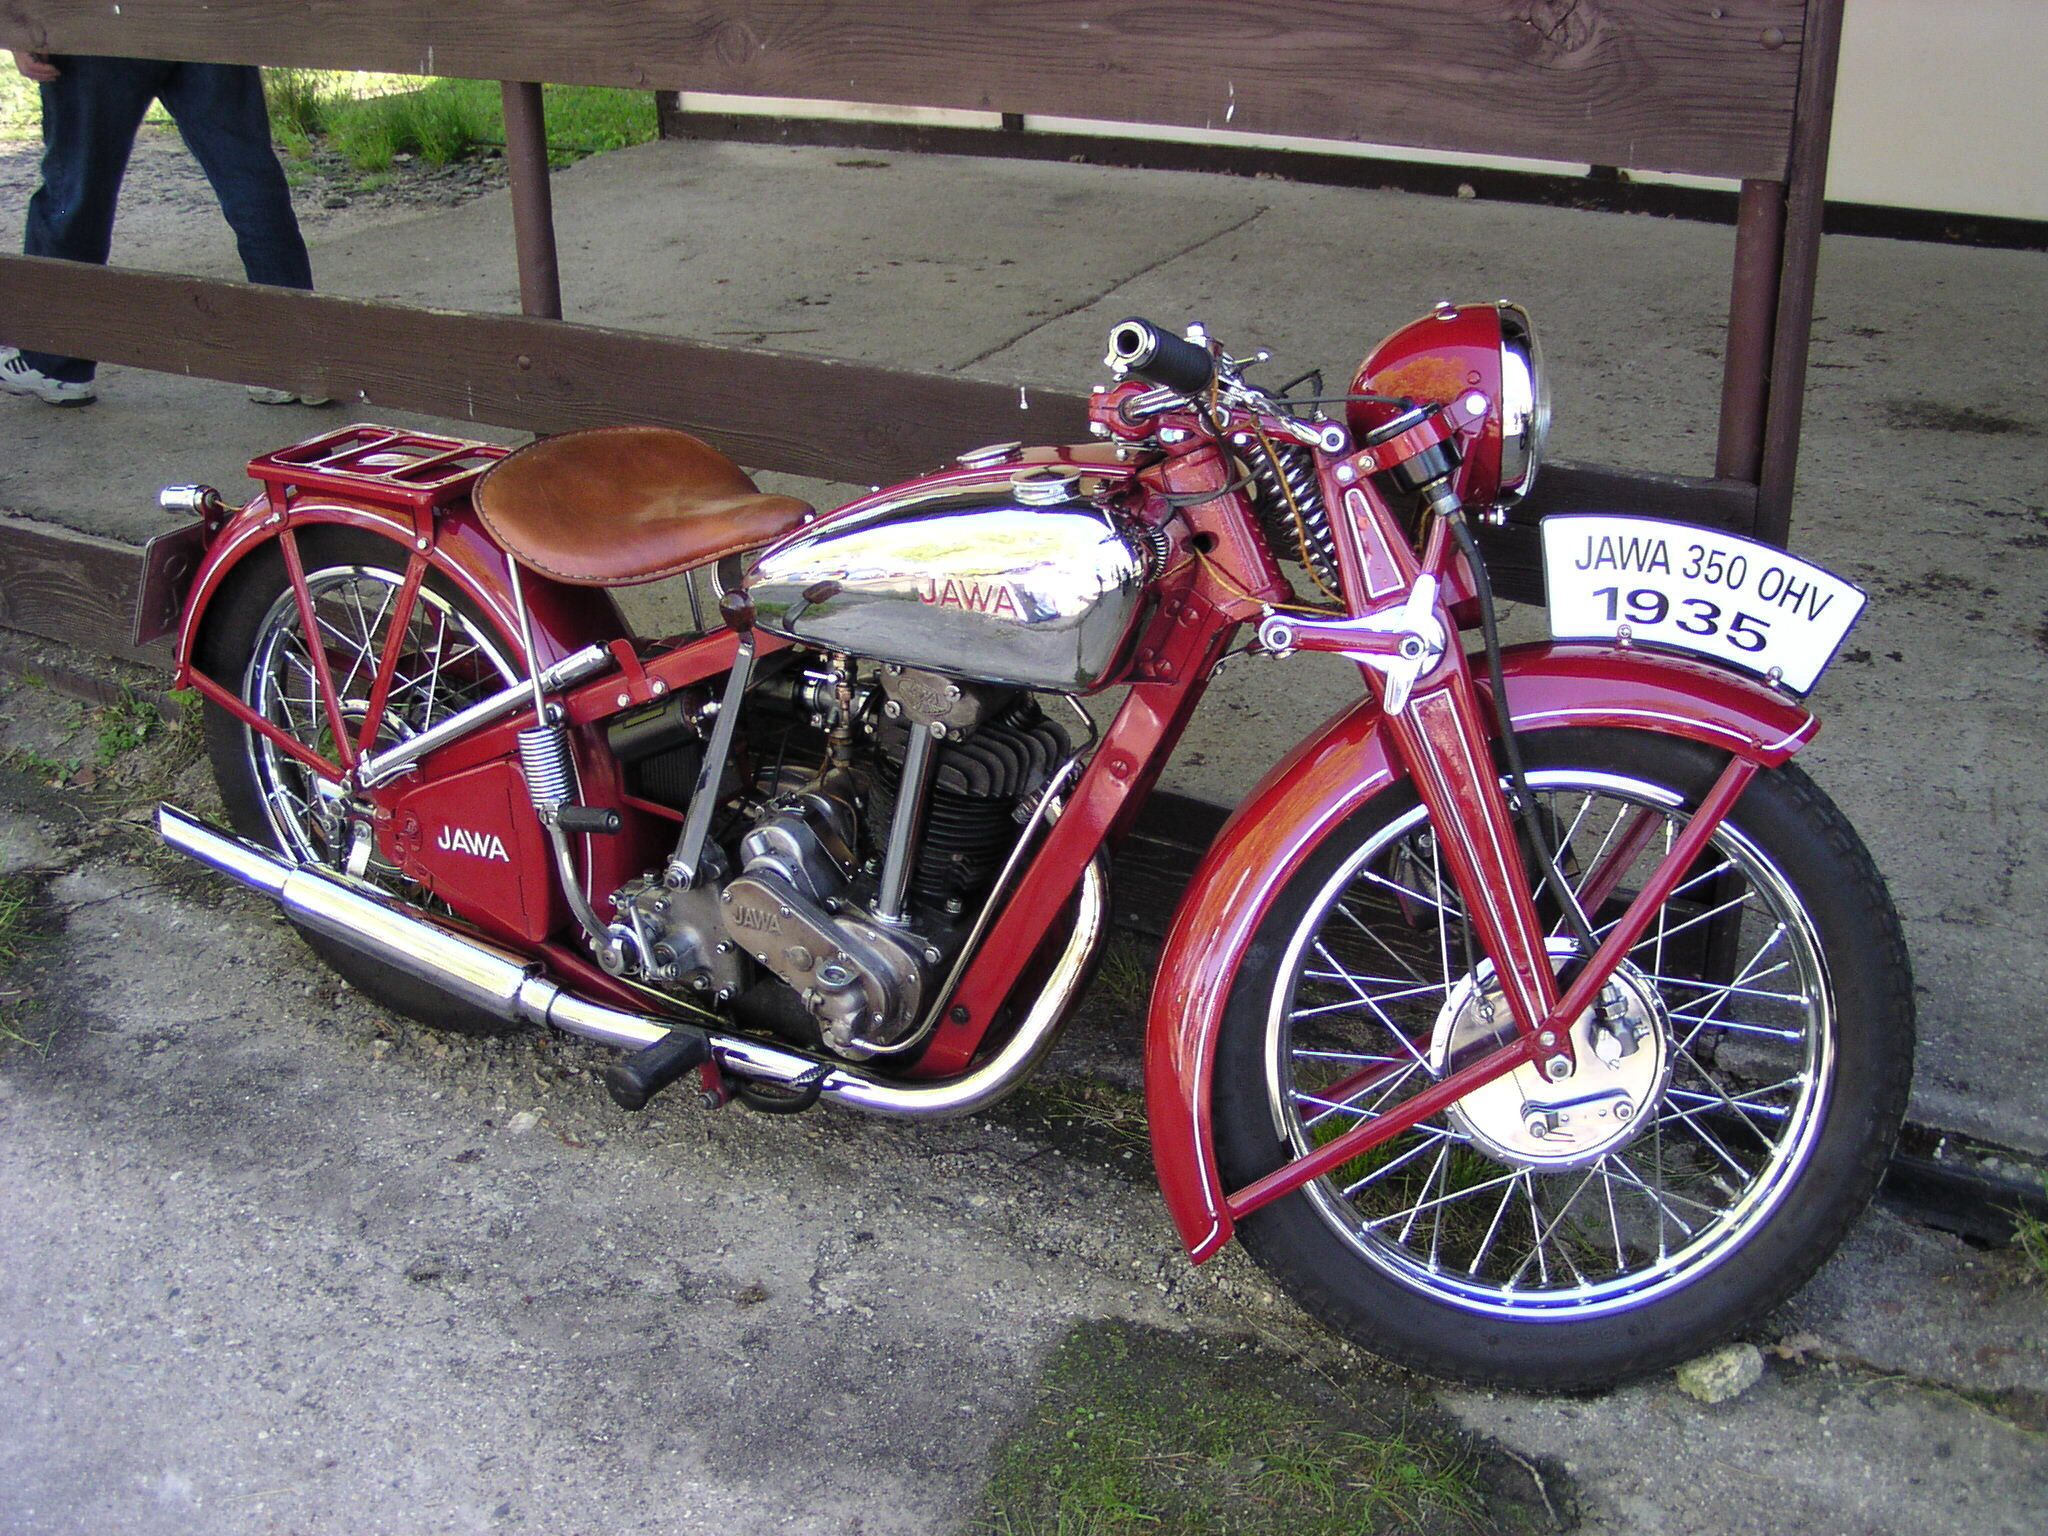 1935 jawa 350 ohv east bloc motorcycles are timeless. Black Bedroom Furniture Sets. Home Design Ideas